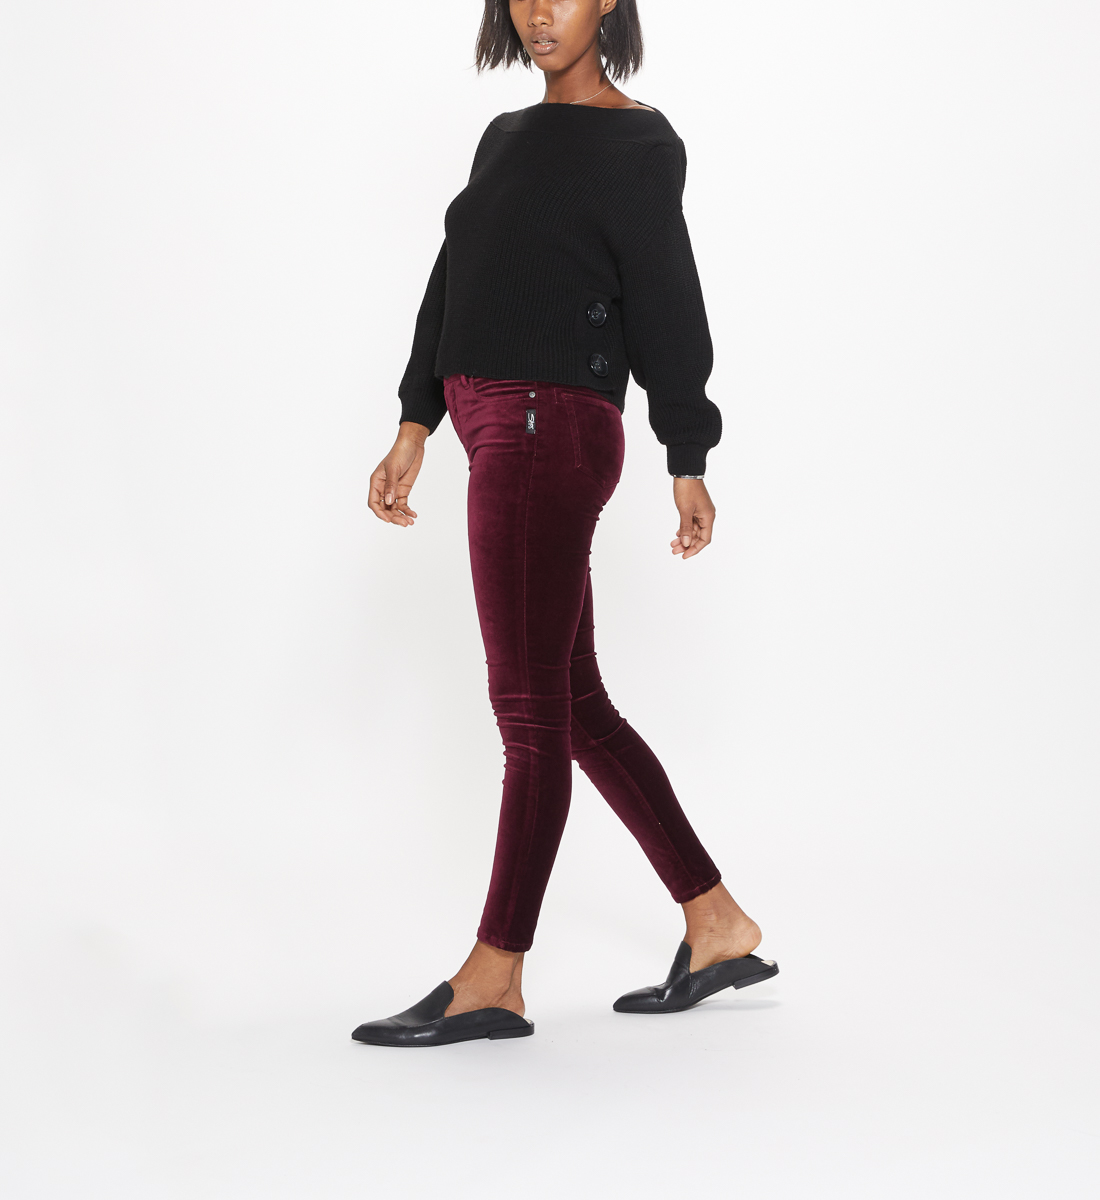 Aiko Mid Rise Skinny Leg Pants Final Sale,Cherry Side